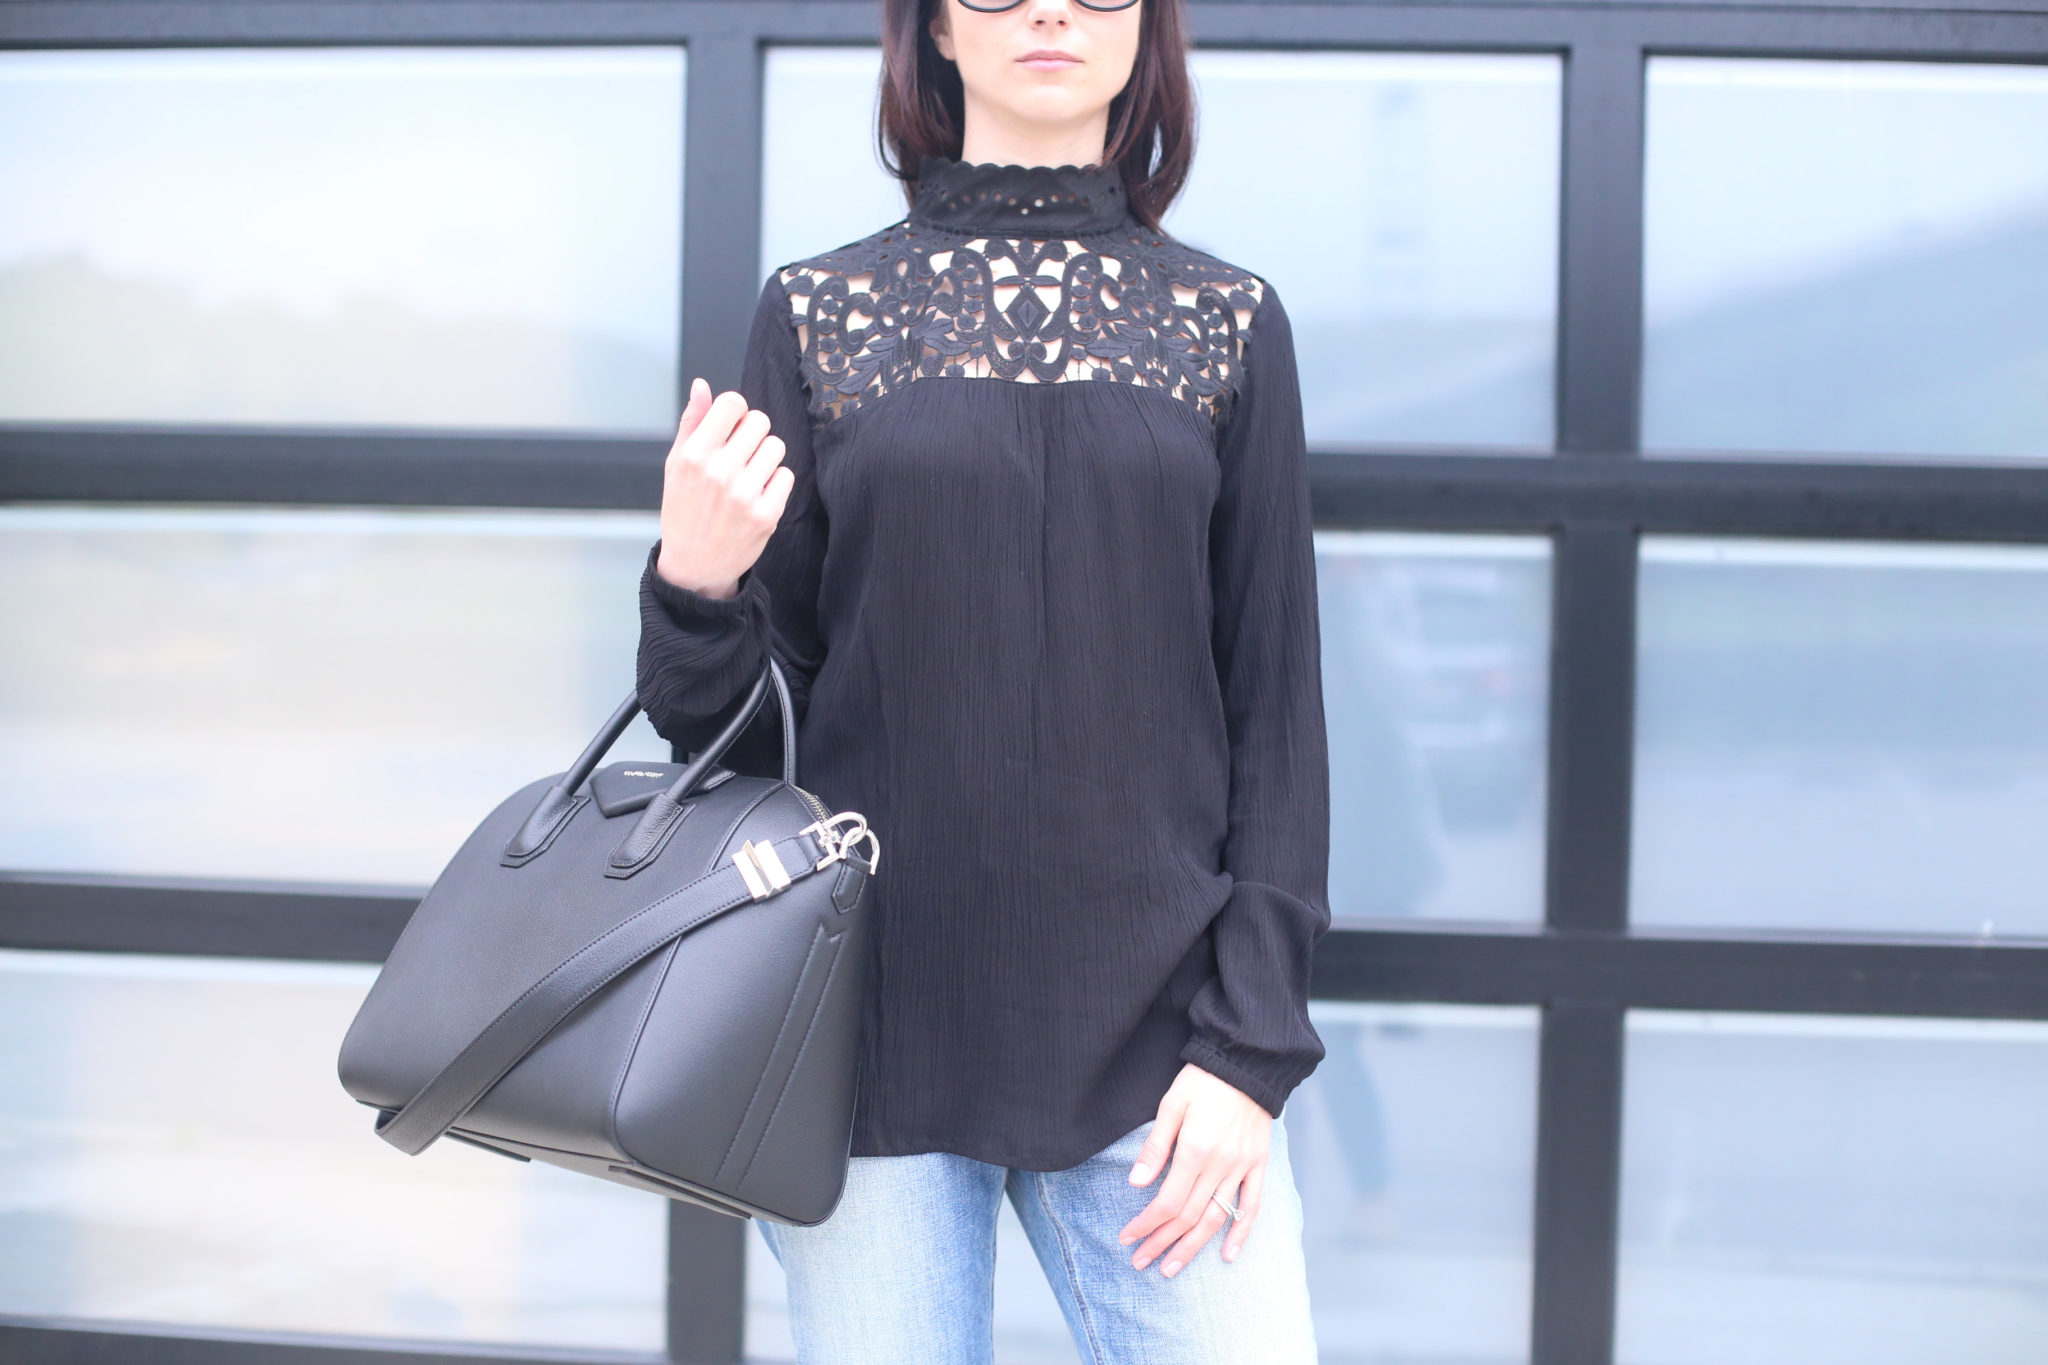 Mock Neck Top Target Style